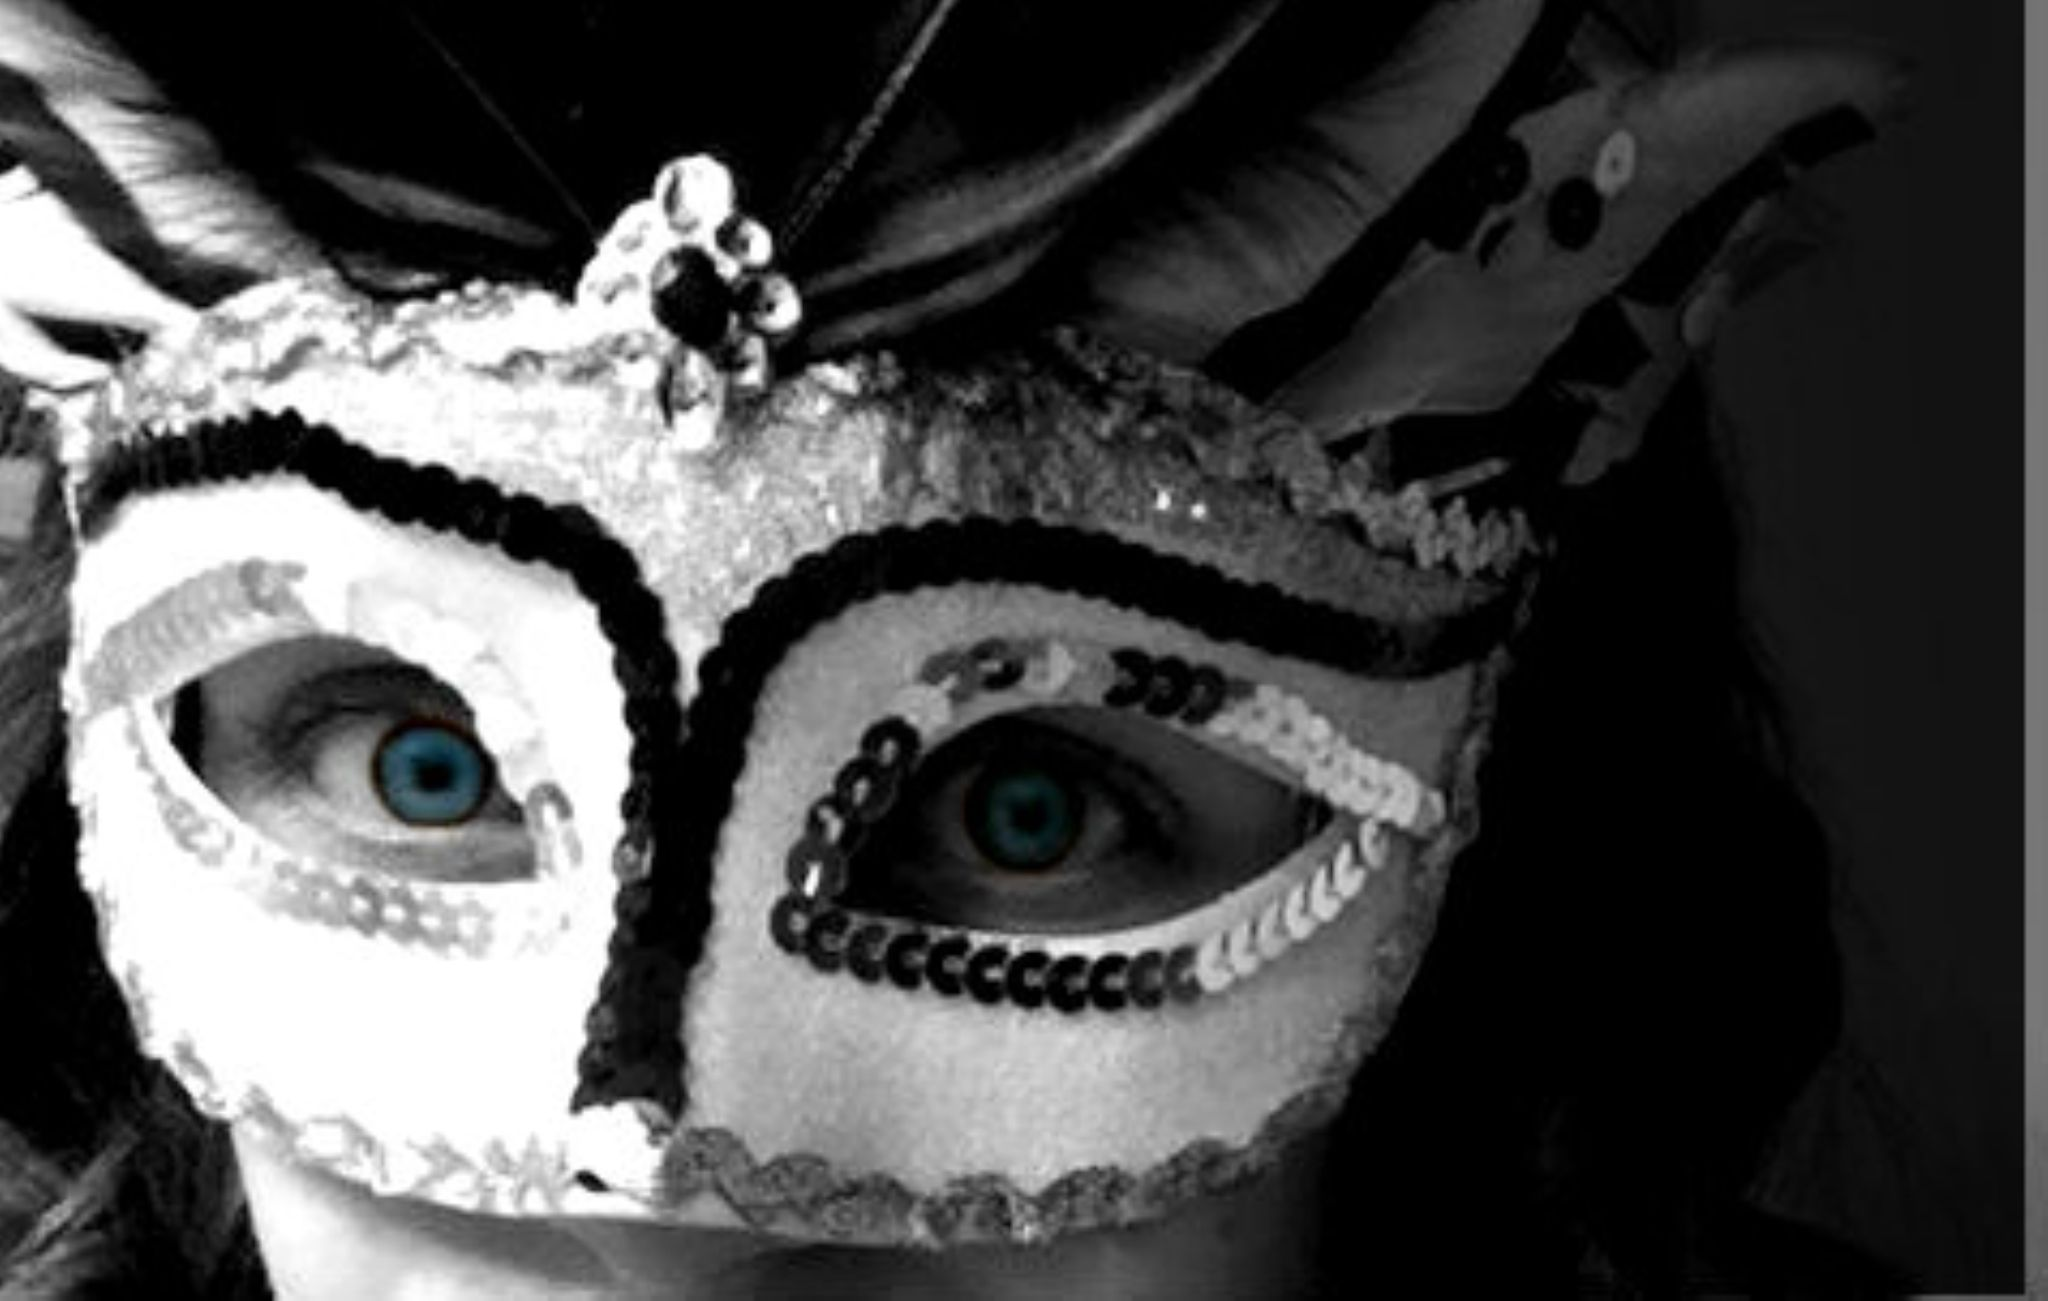 Masquerade  by torii.amis